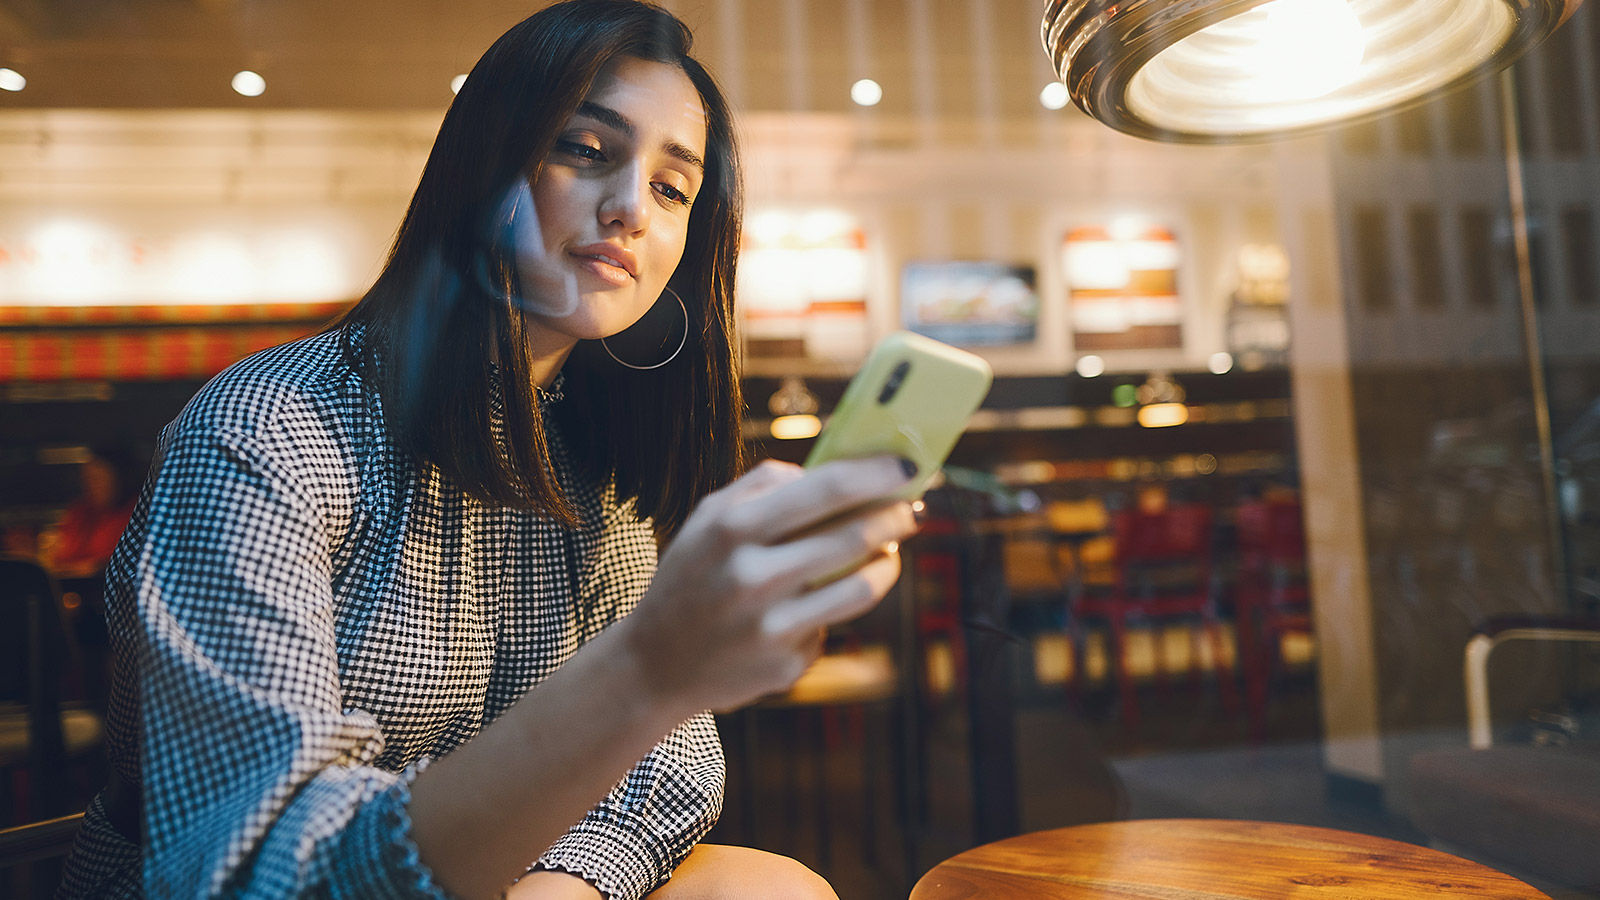 Bharti Airtel, FLO launches MyCircle app for Women's Safety